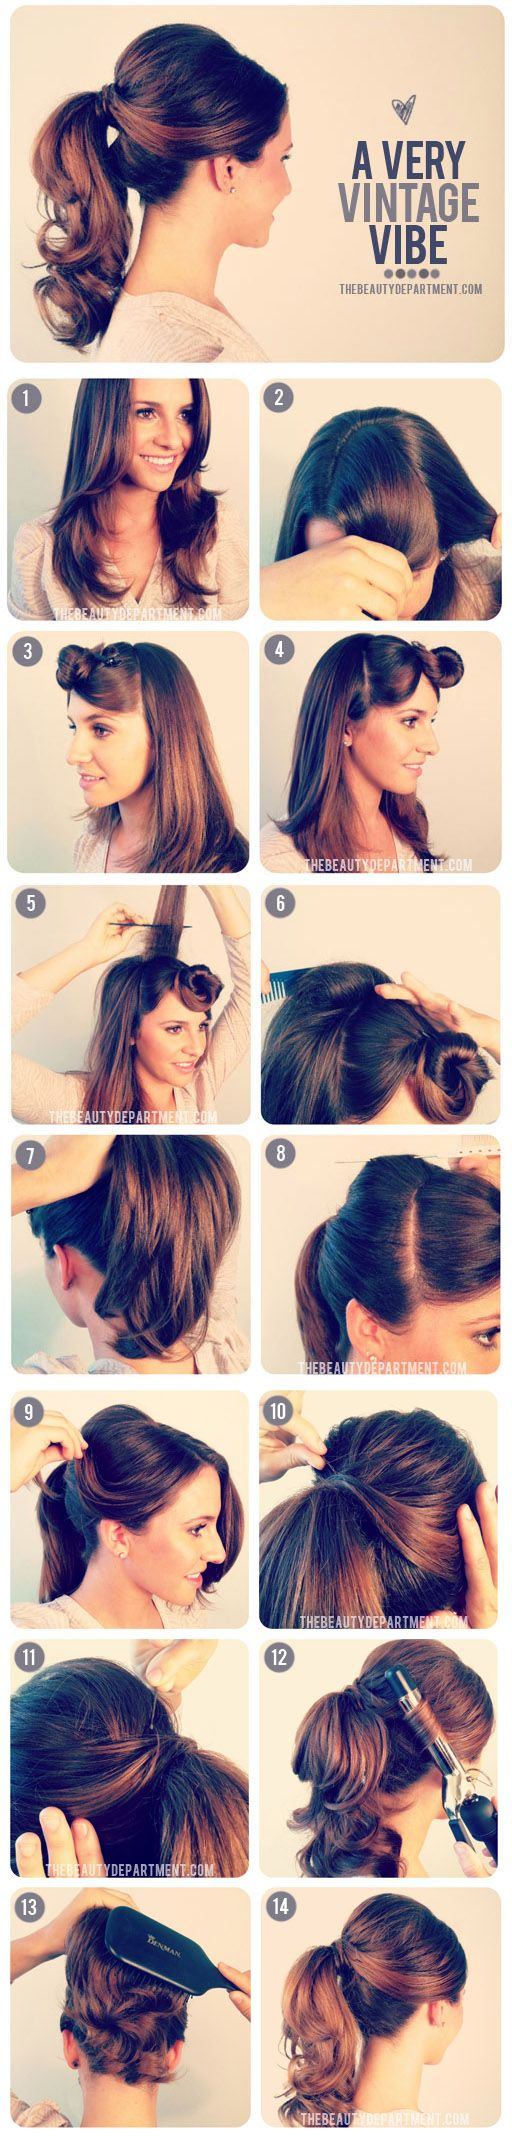 Retro pinup ponytail #1950s #1960s #hairstyle